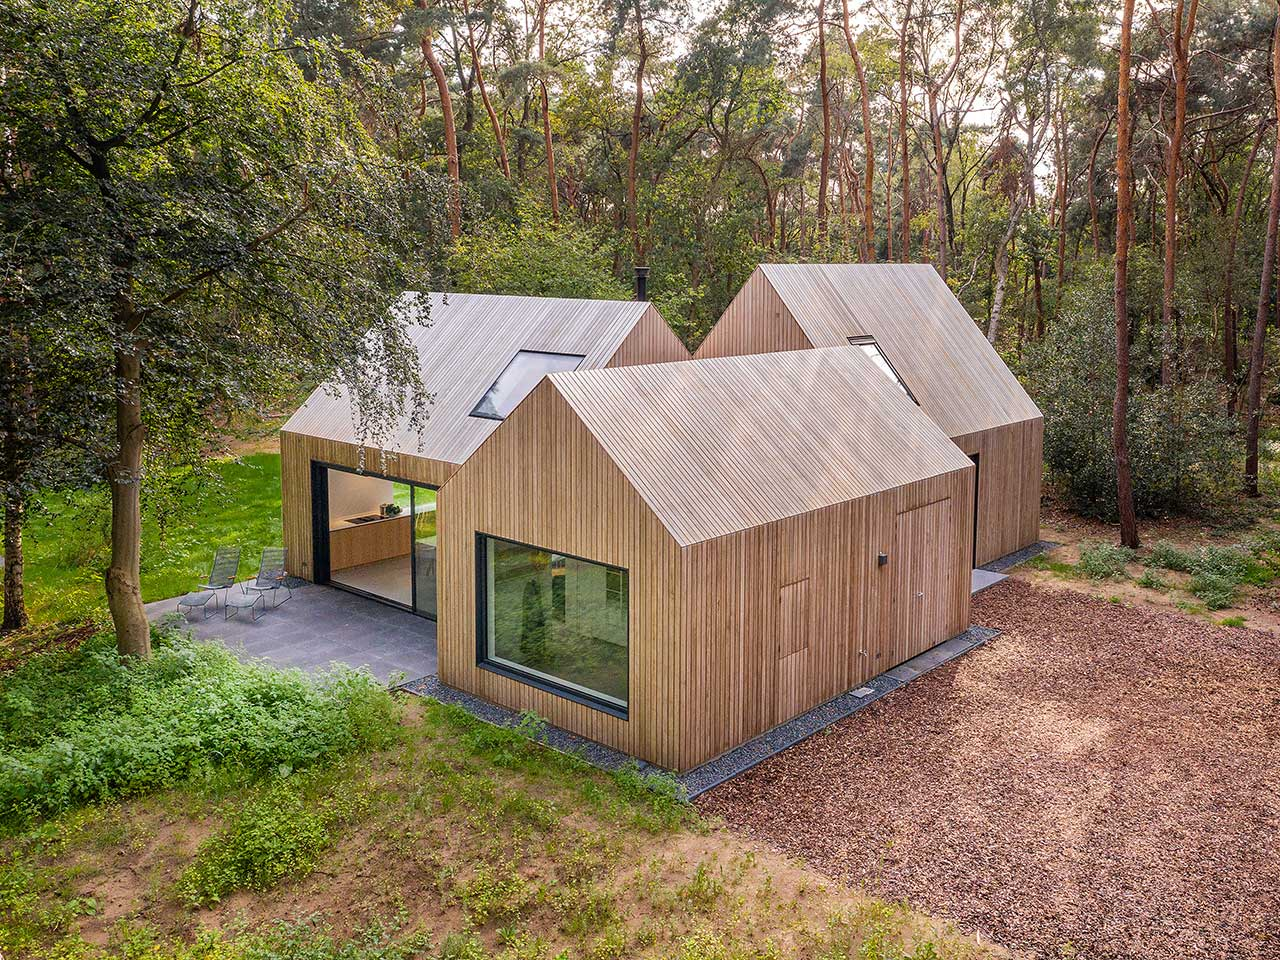 A Relaxing Holiday Retreat in the Woods Is a Respite From City Life